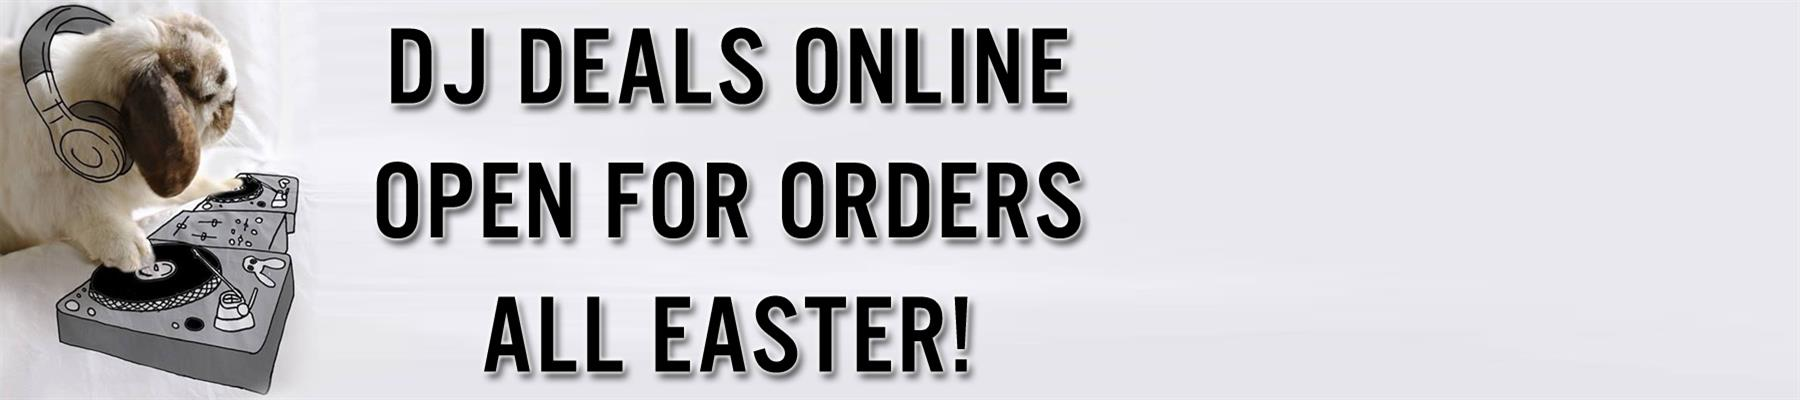 DJ Deals Online Open For Orders All Easter